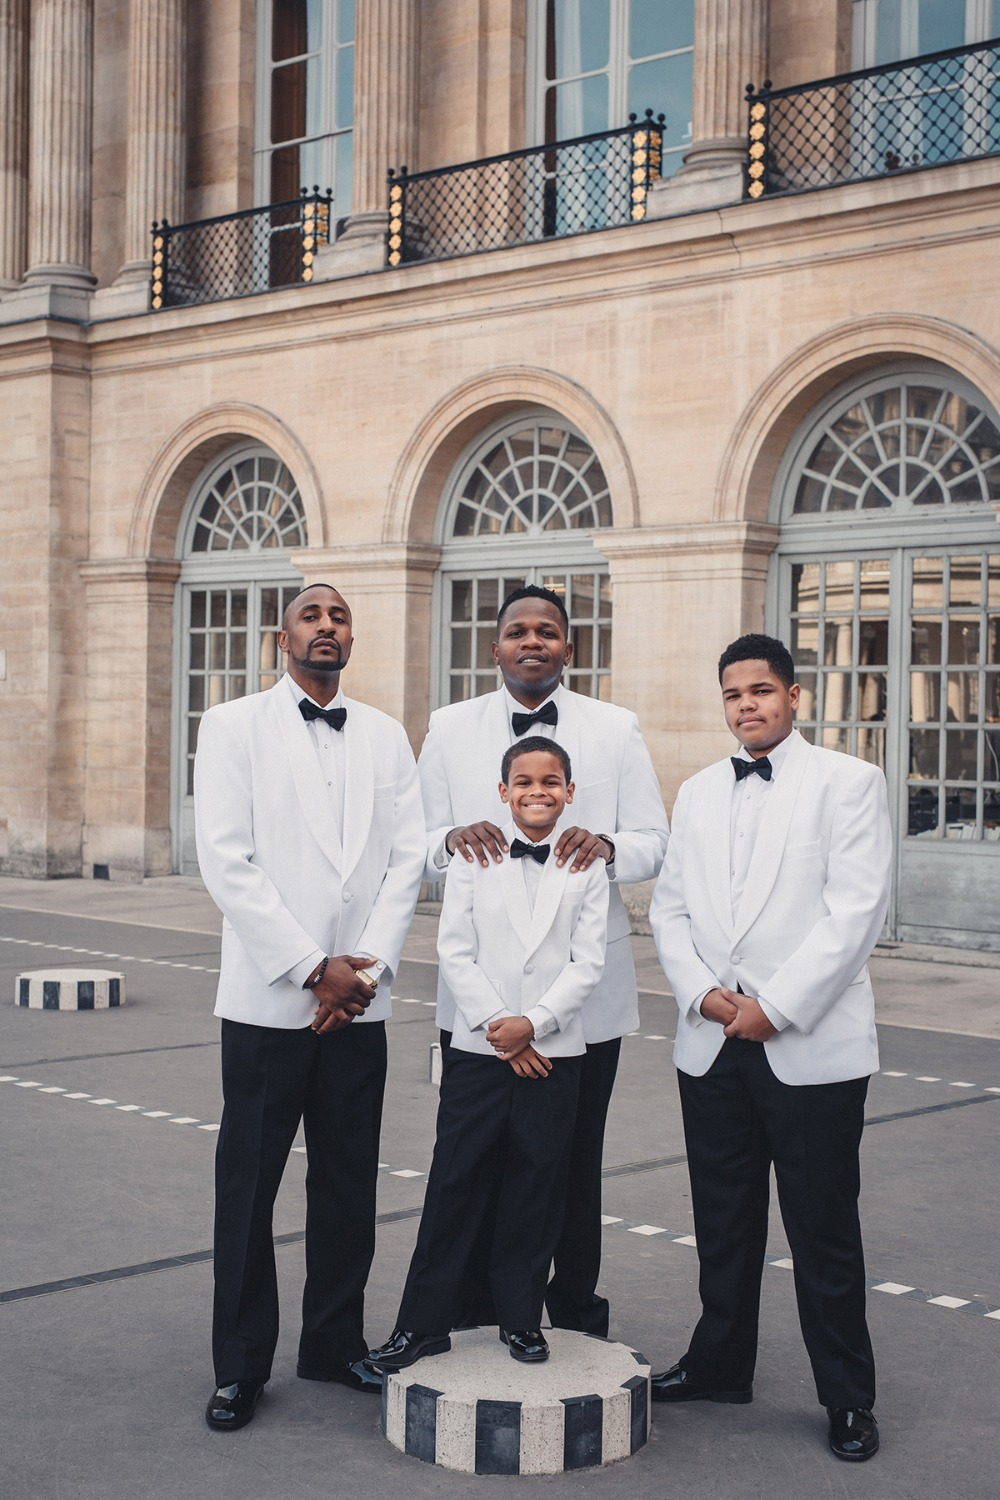 Groom and his men in white